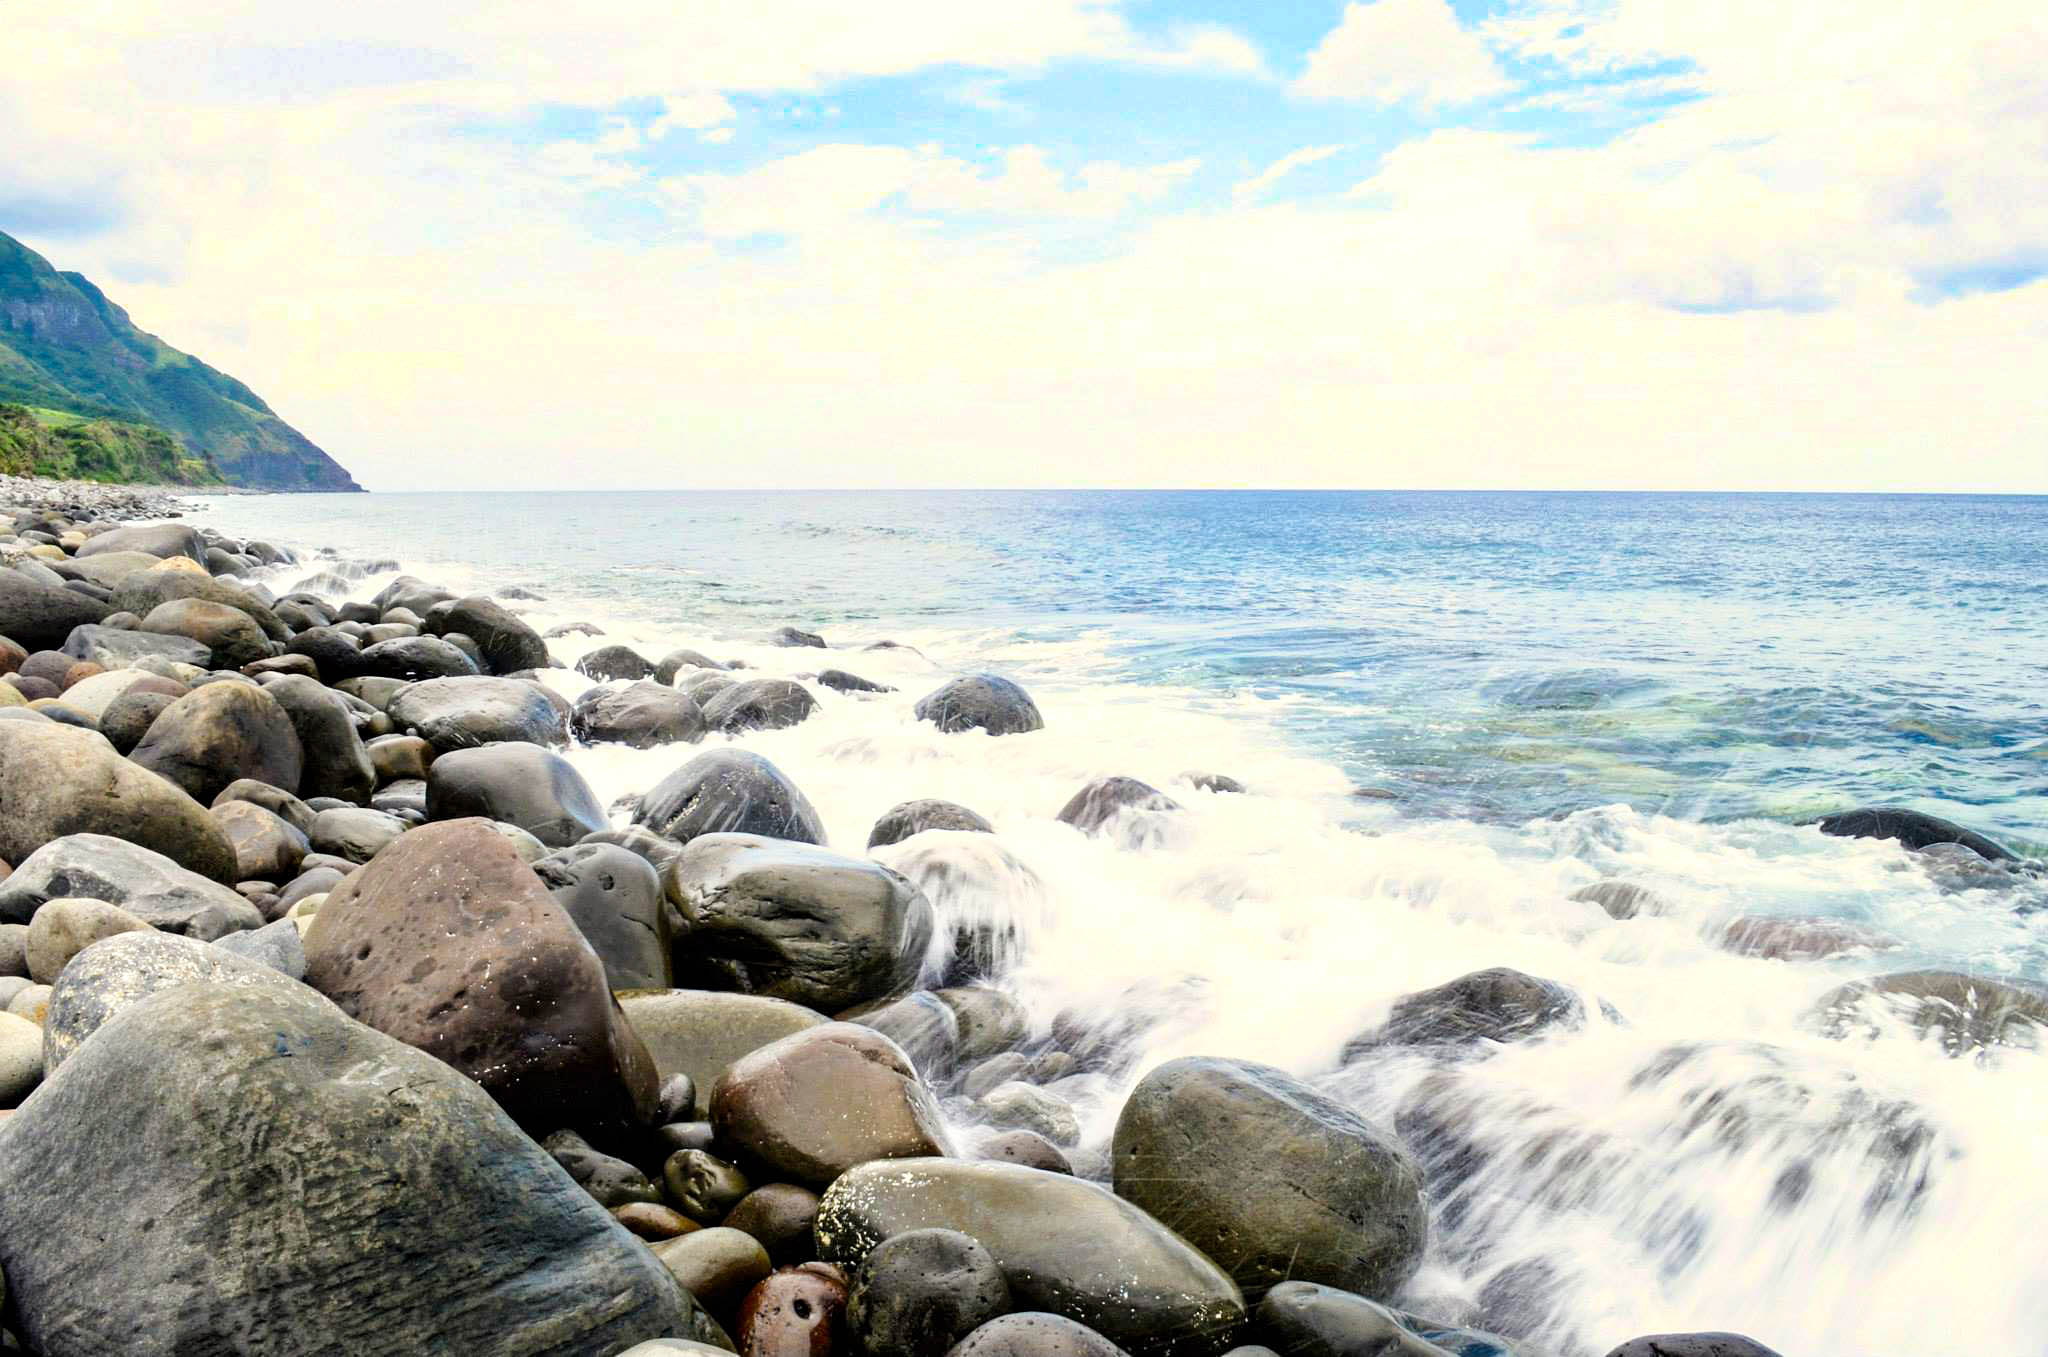 White waves wash over a shore of boulders in Batanes, Philippines